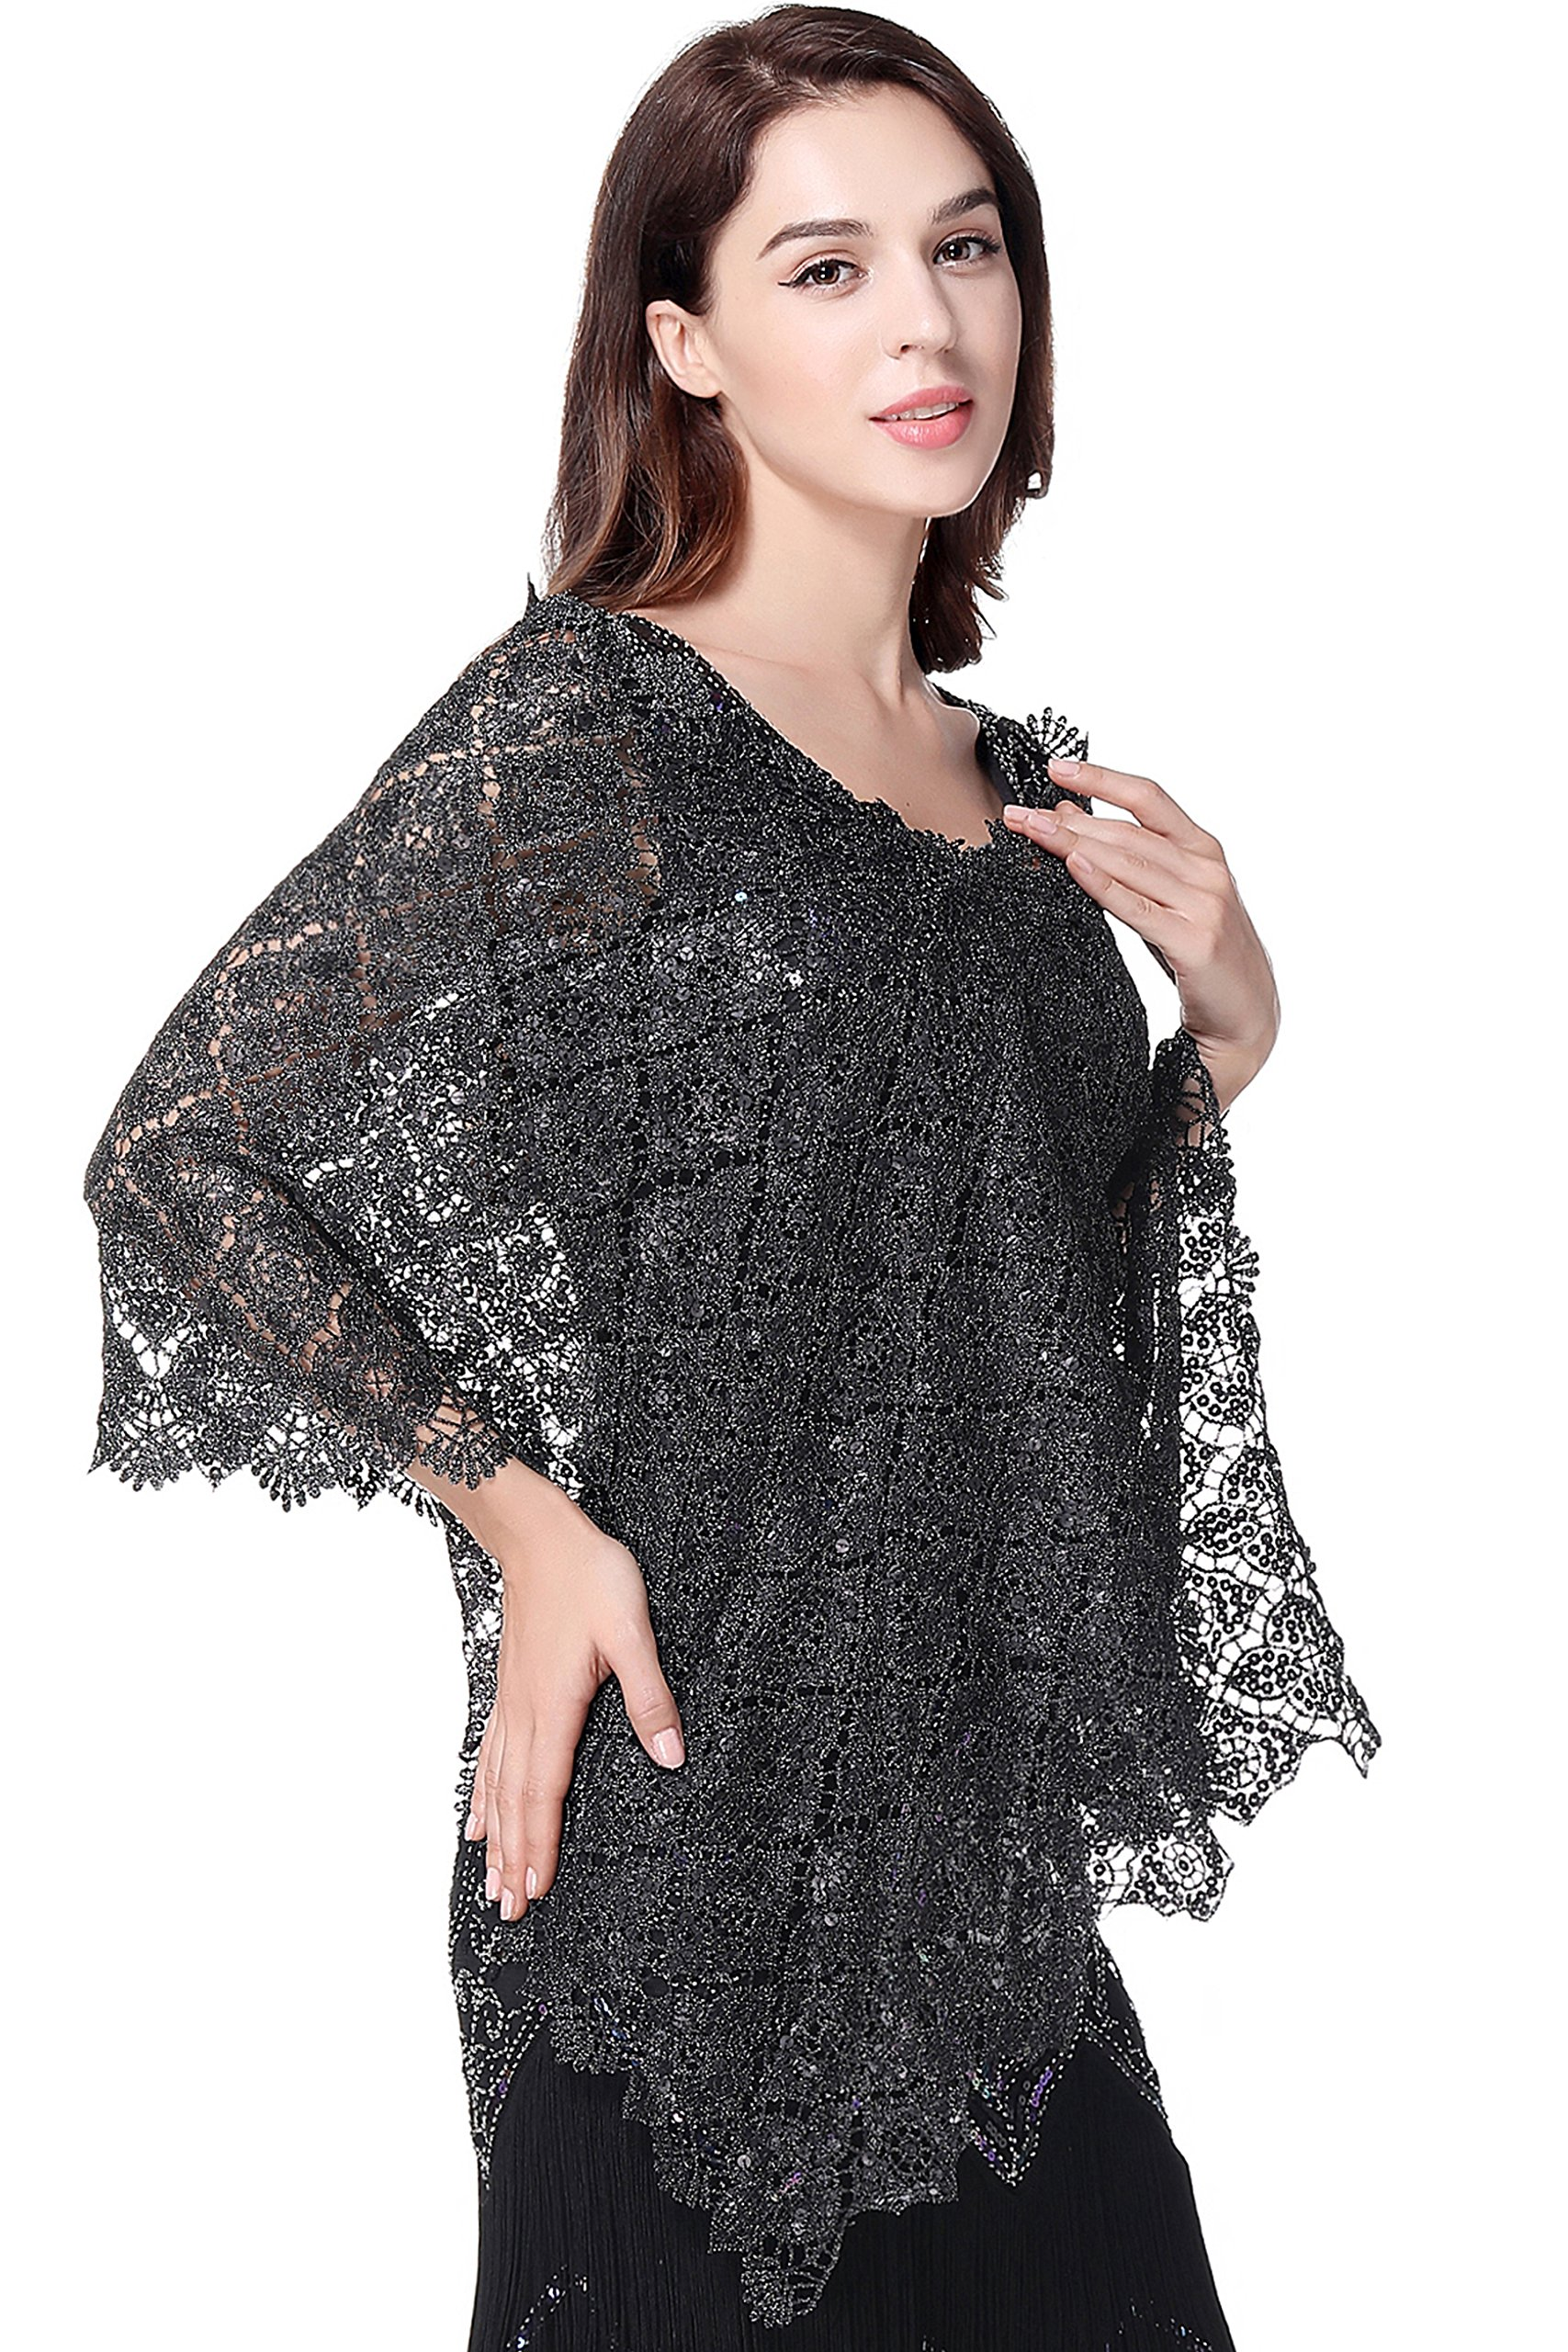 BABEYOND 1920s Sequined Embellished Shawl Evening Cape Wedding Bridal Wrap Scarf